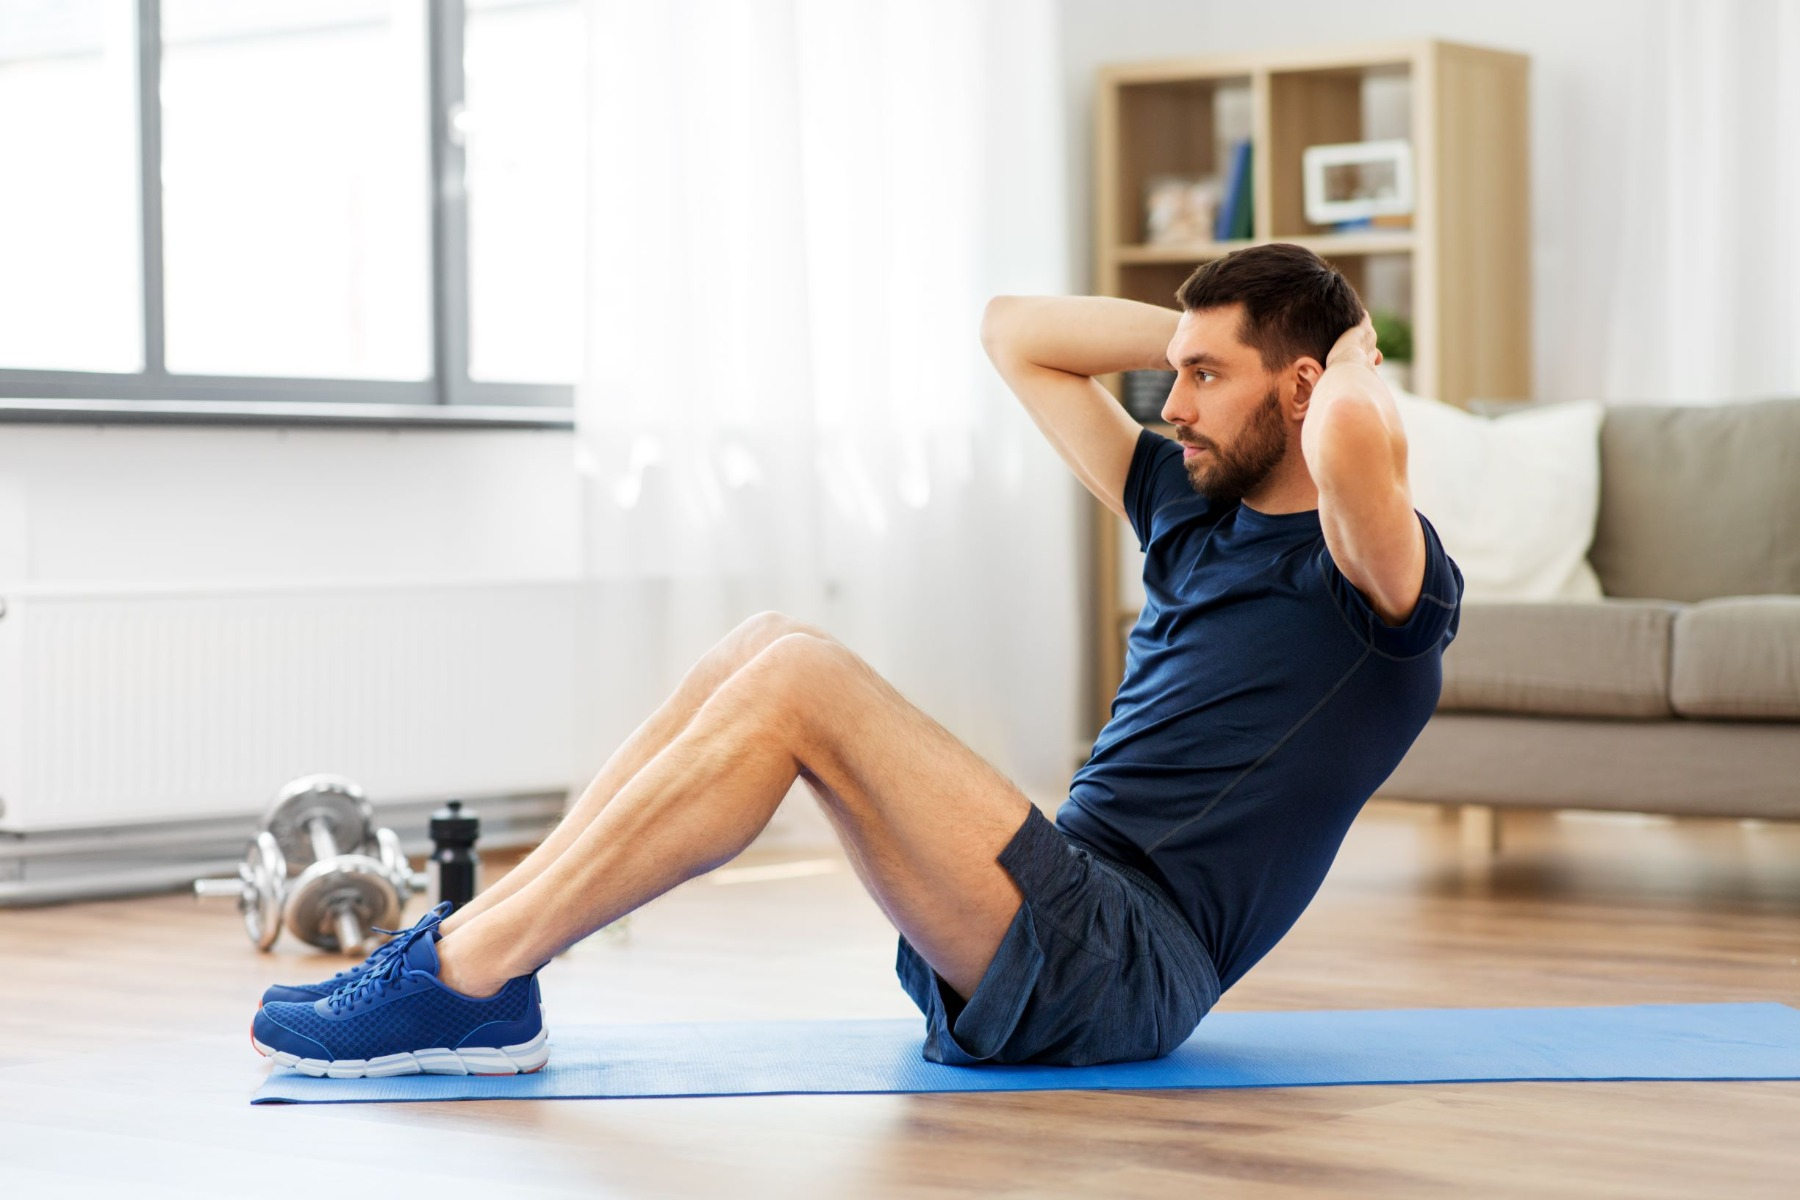 Man doing a sit-up exercise on blue exercise mat